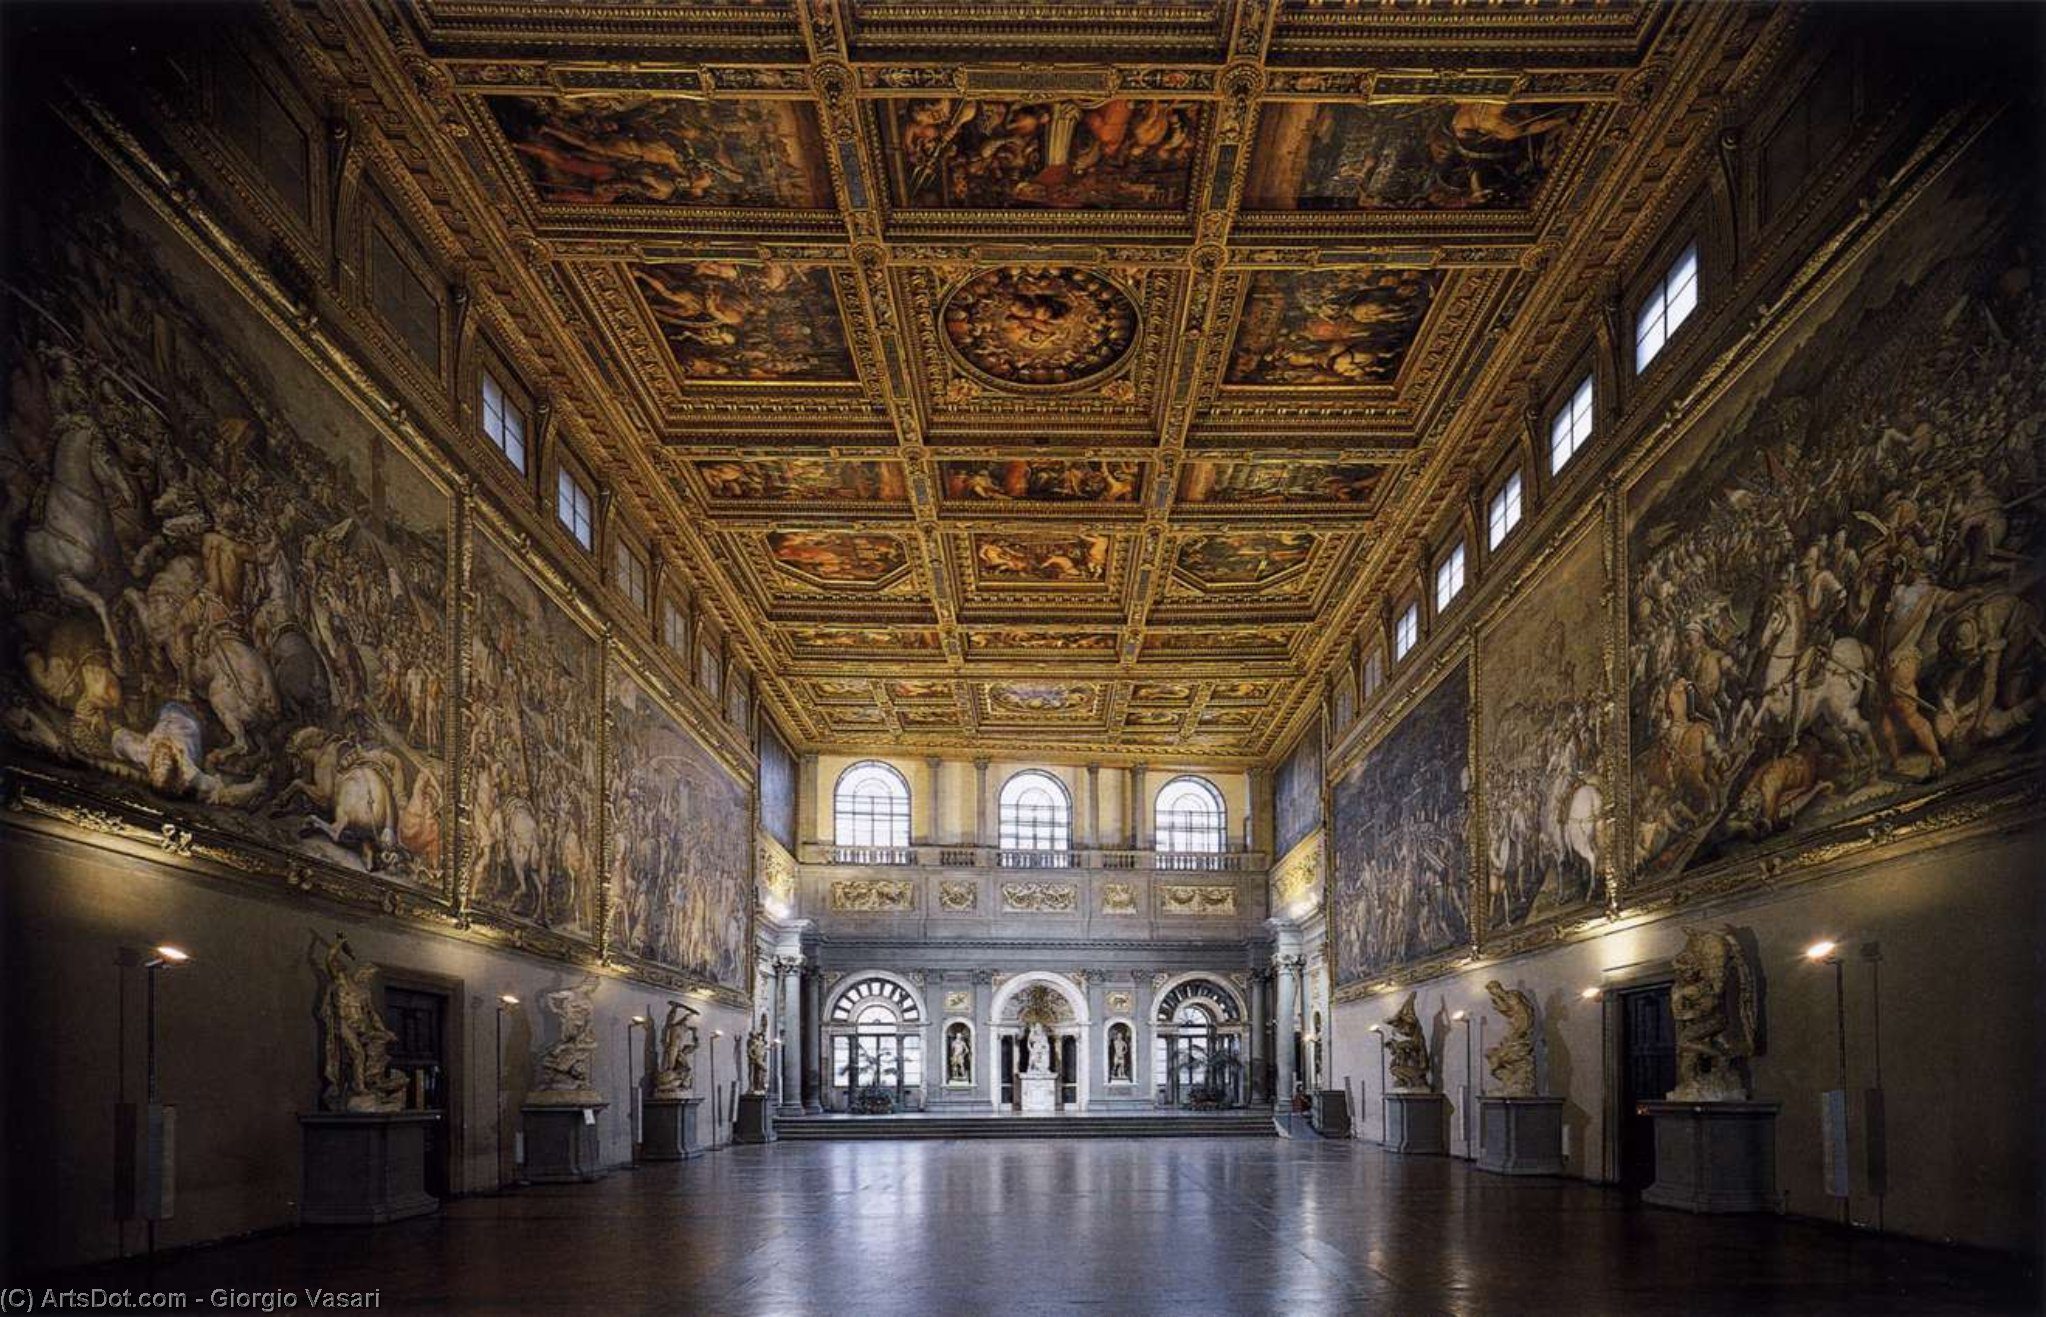 a description of the first academy of art founded in florence by giorgio vasari